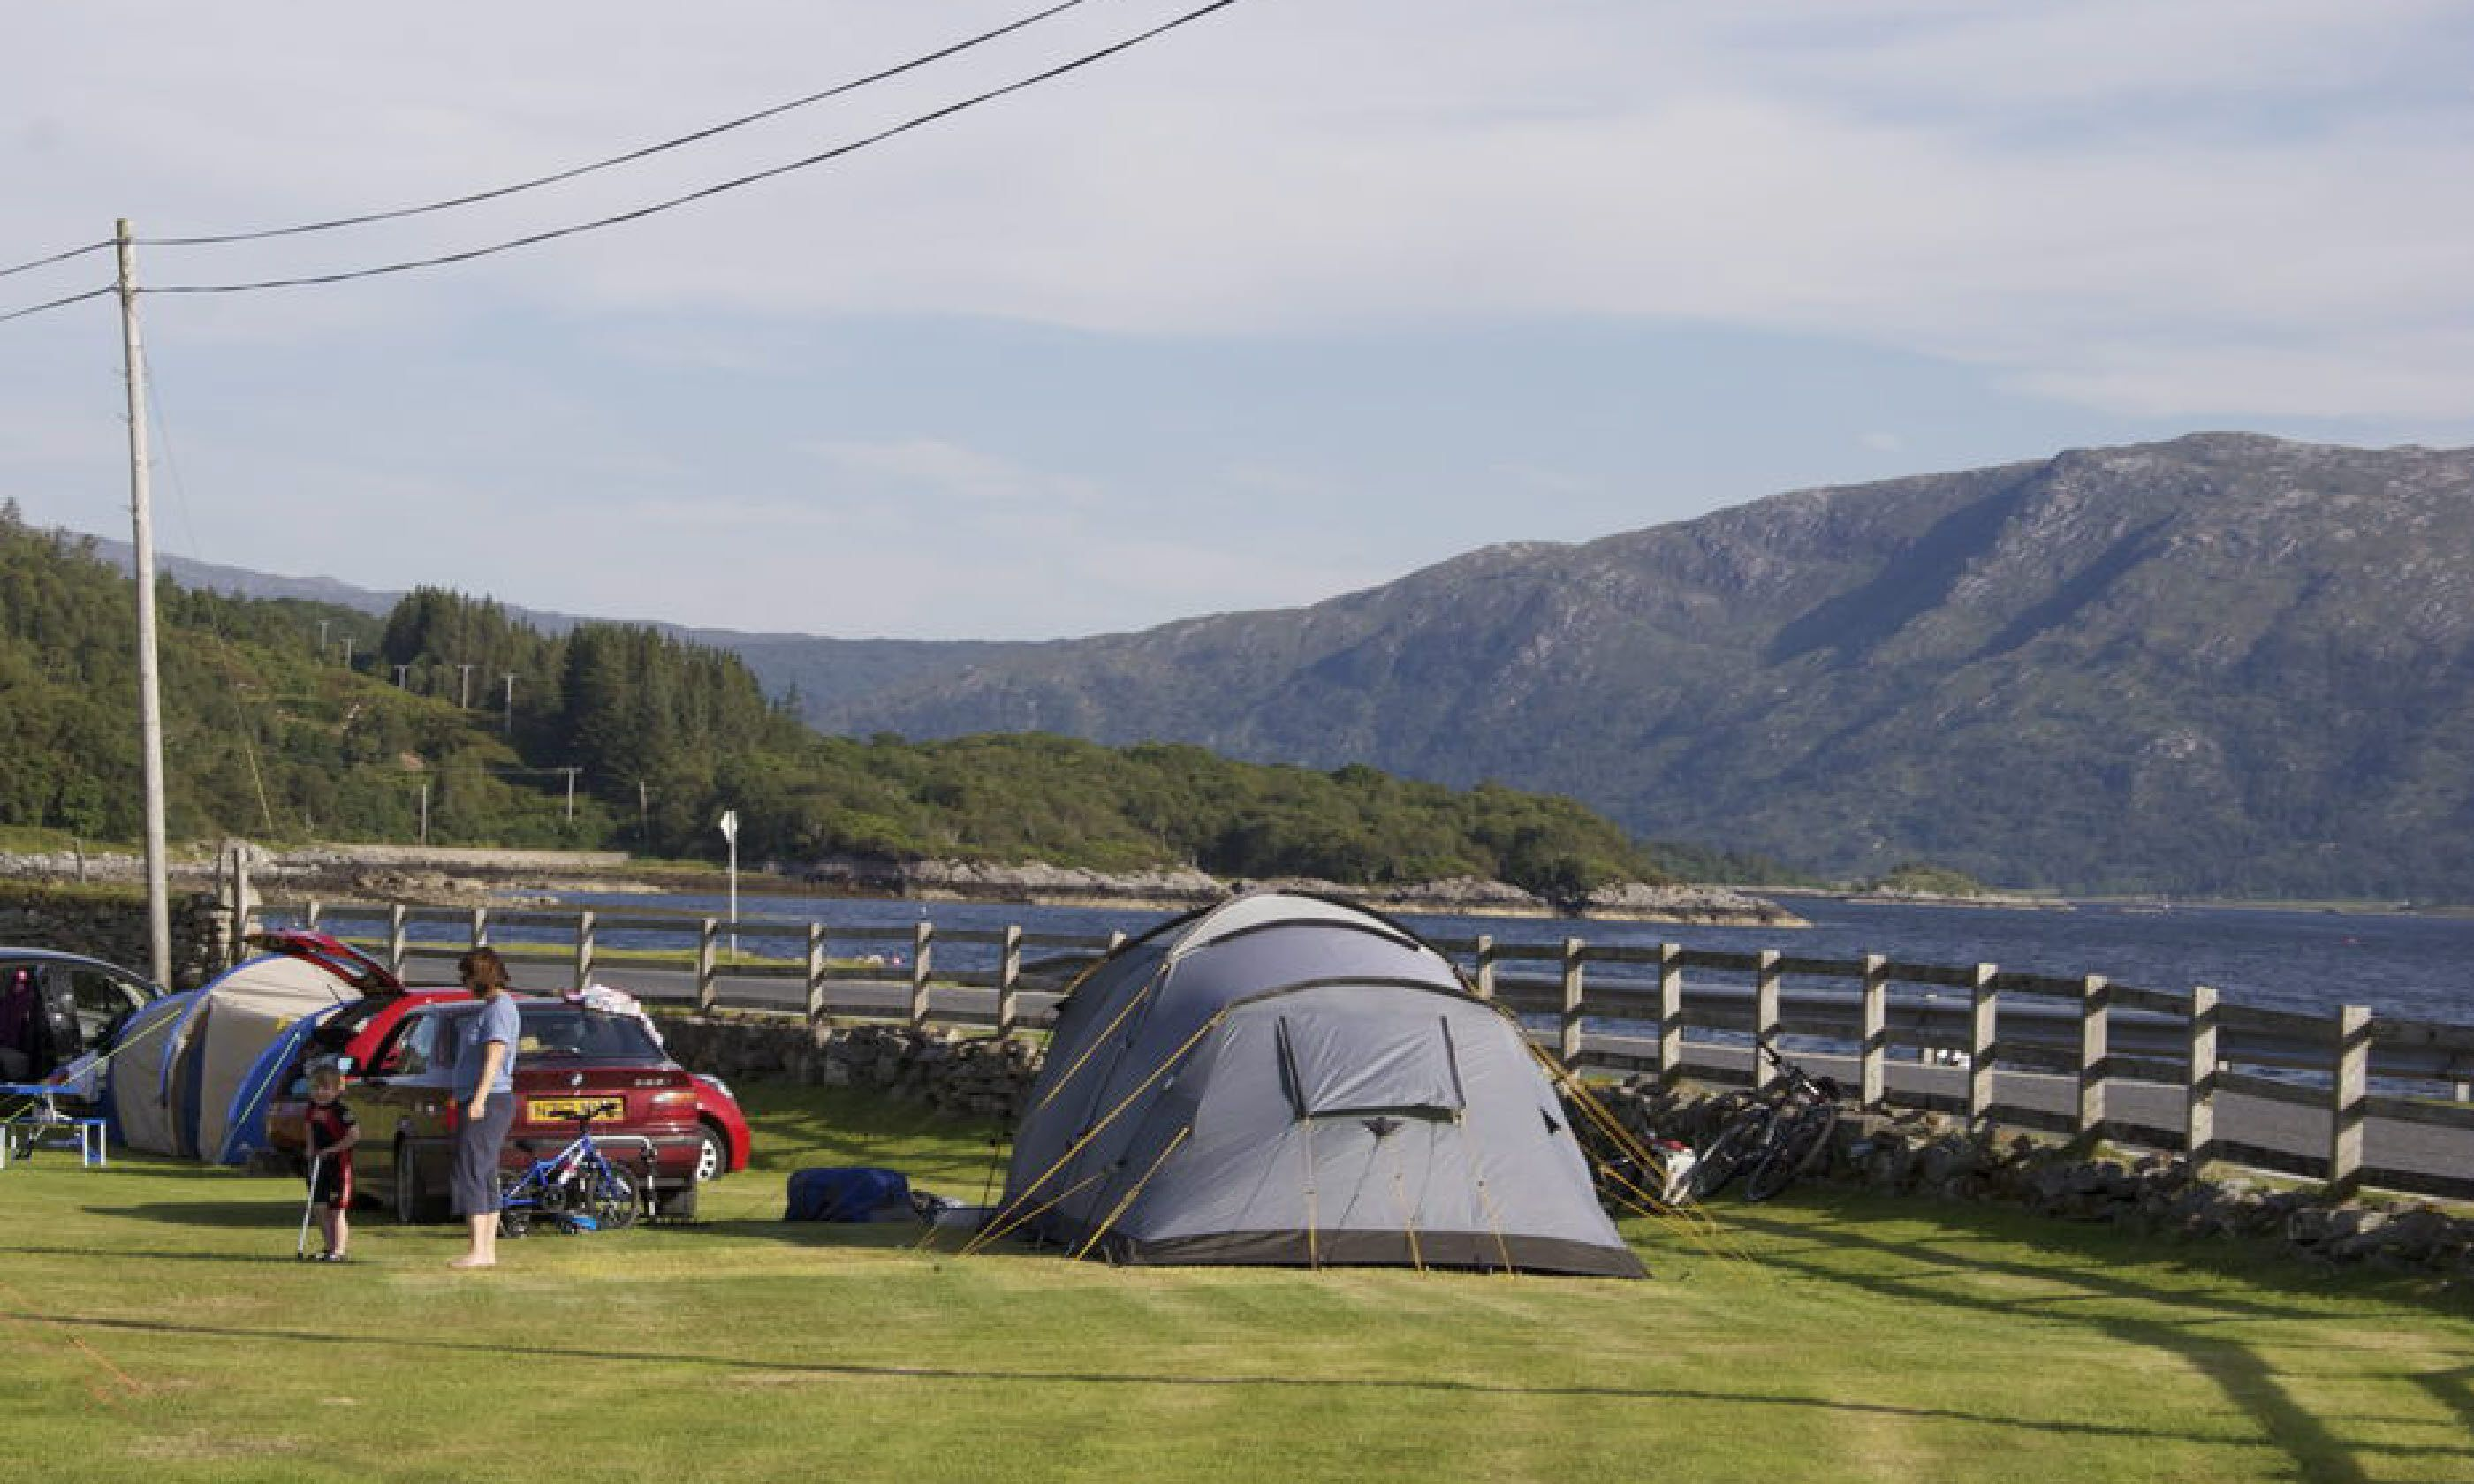 Whats Allowed Tents Campervans Caravans Groups Families And Active Campers Yes Amenities 60 Hardstanding Grass Pitches All With Superb Views